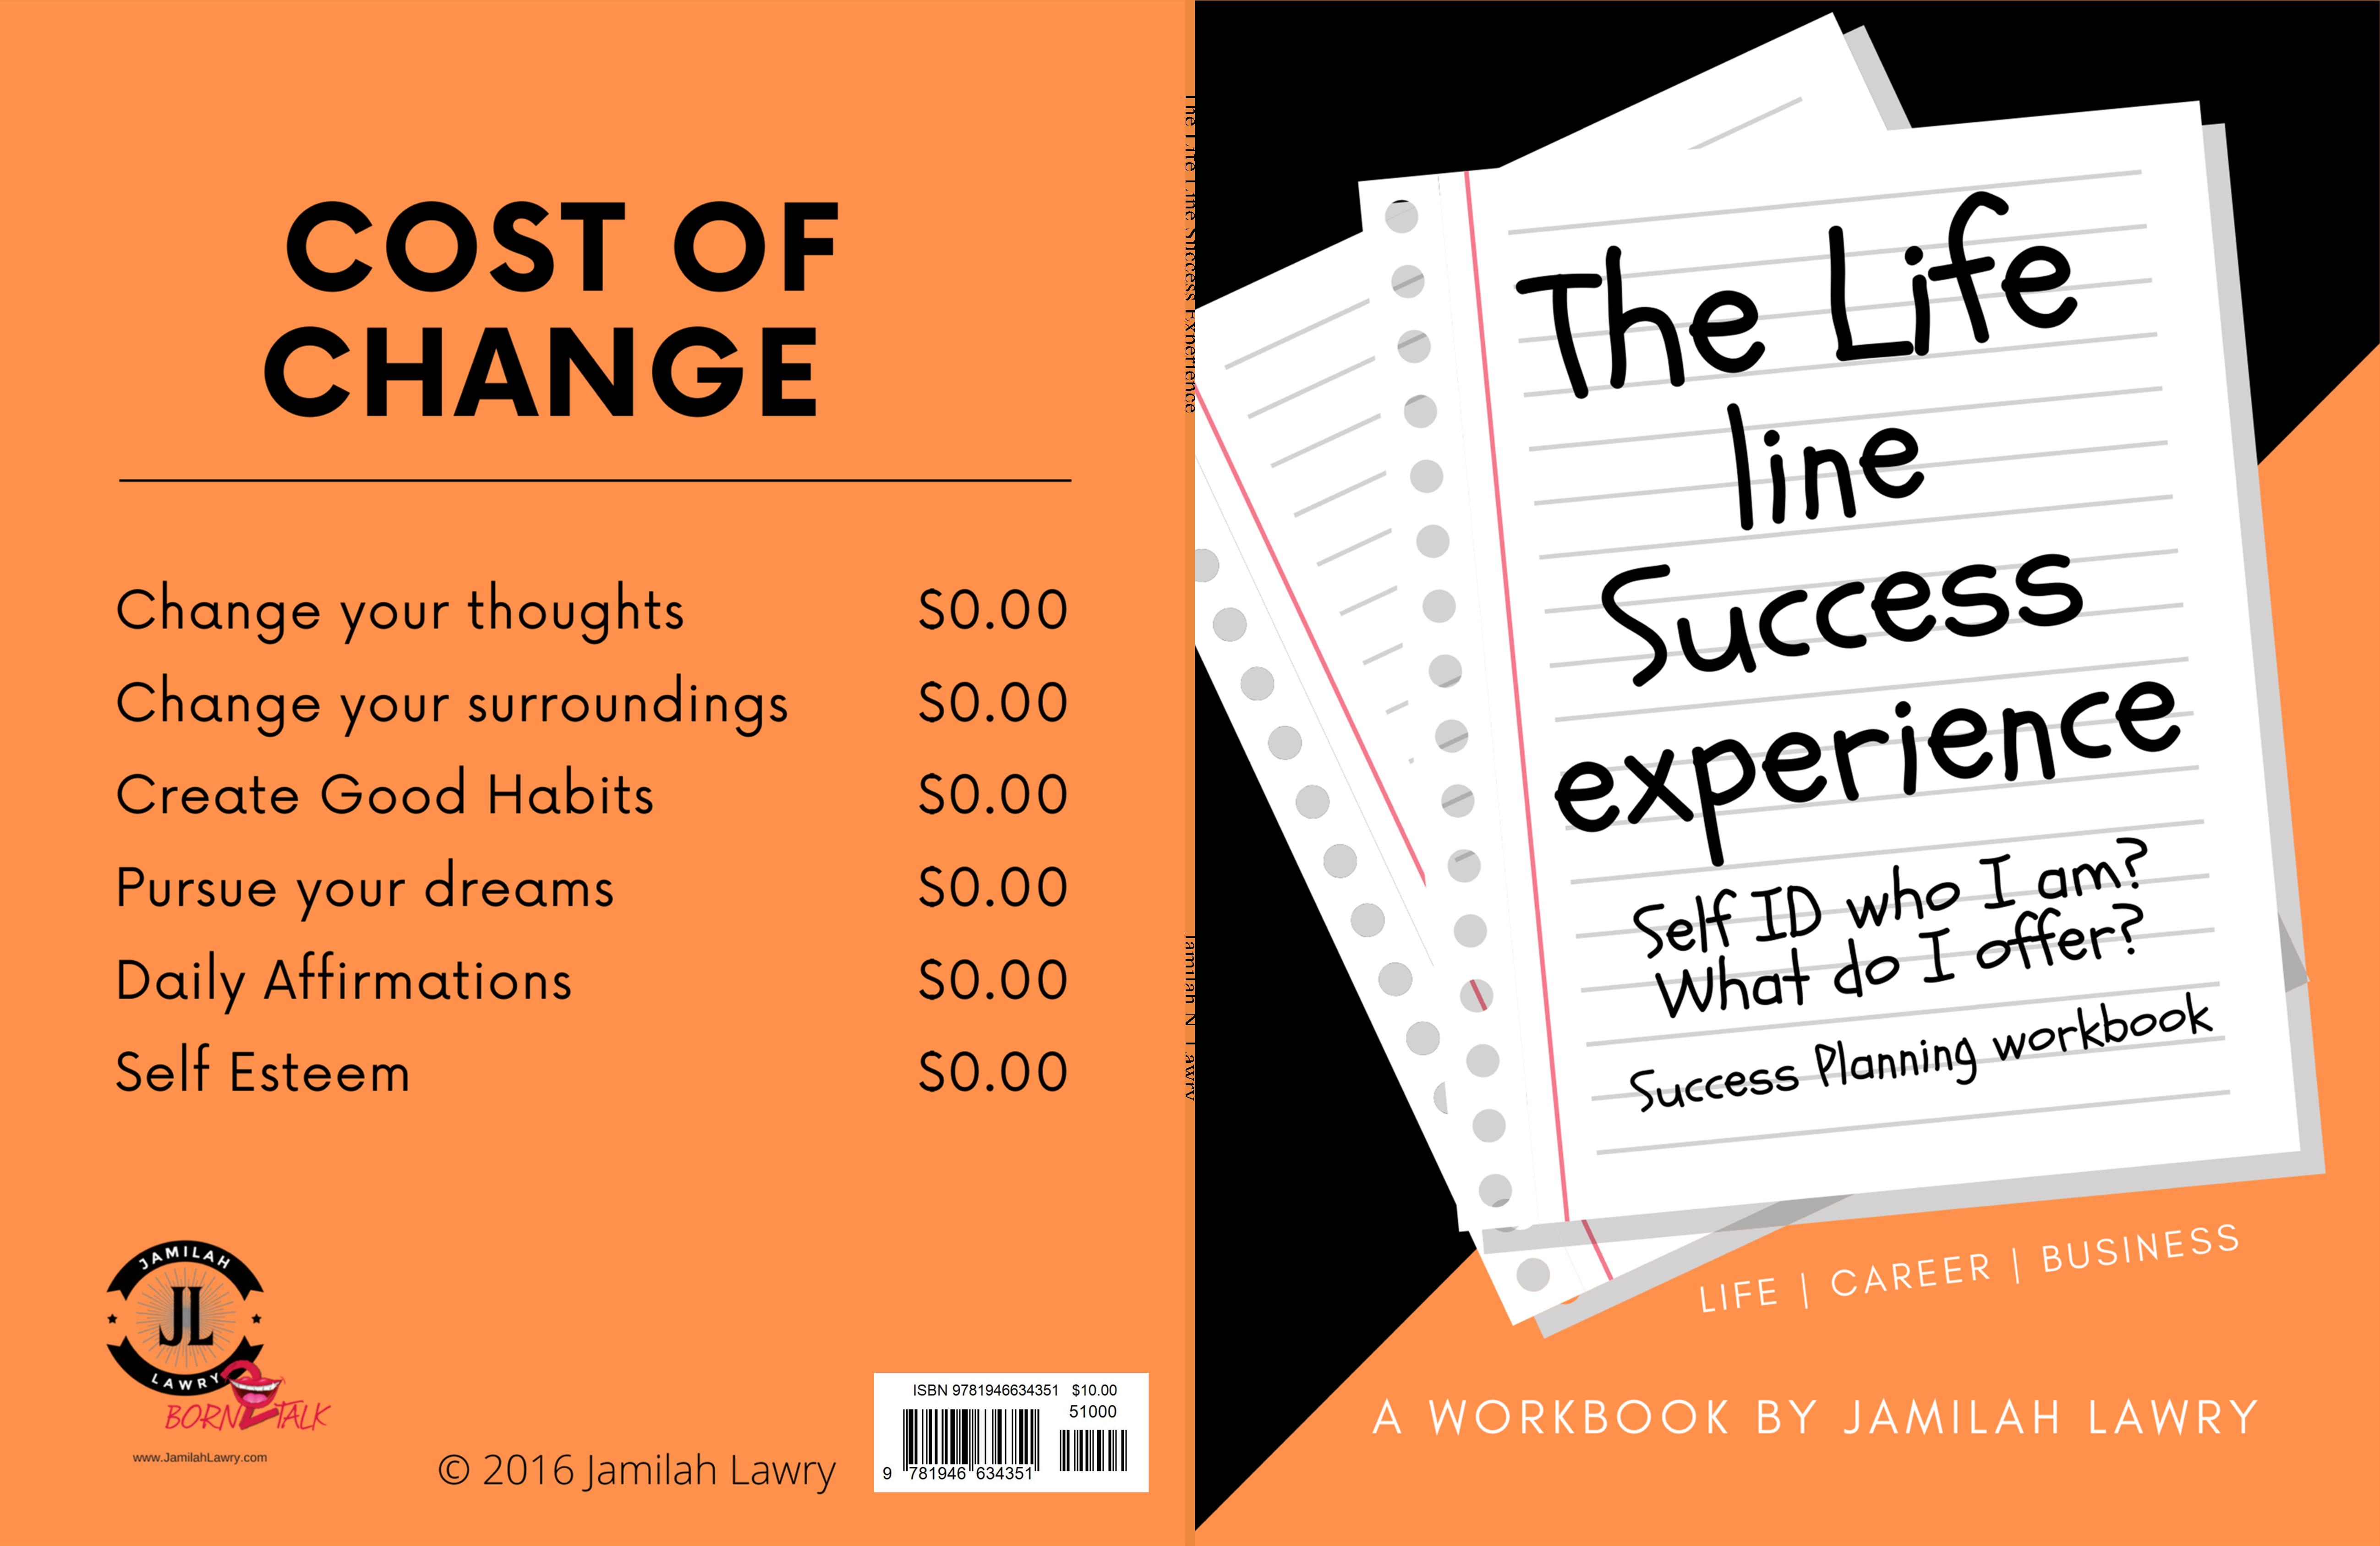 The Life Line Success Experience cover image